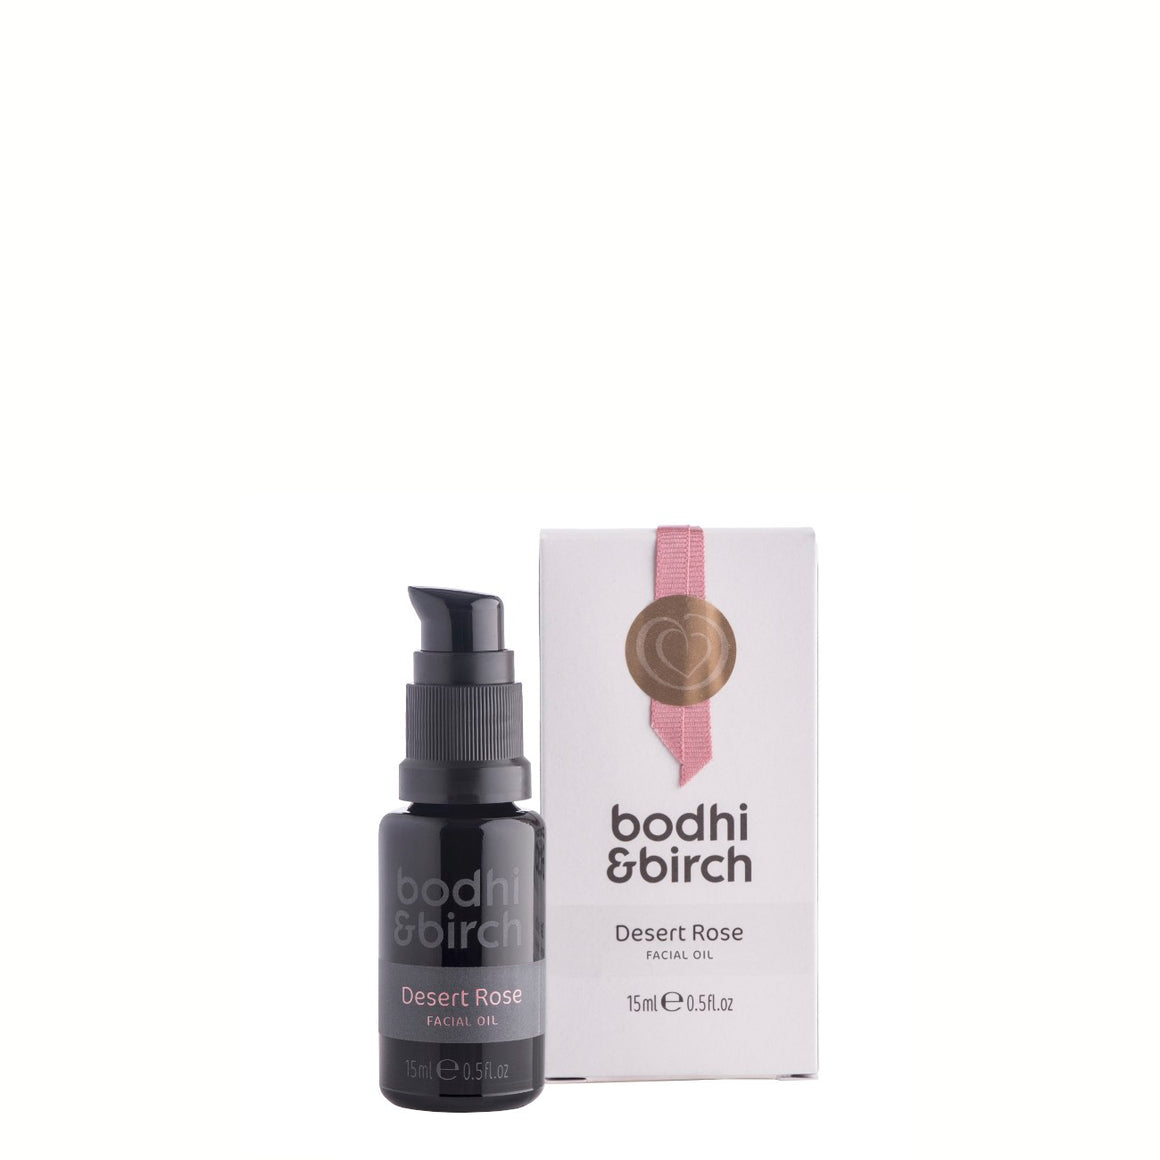 Bodhi & Birch Desert Rose veido aliejus - About.Skin